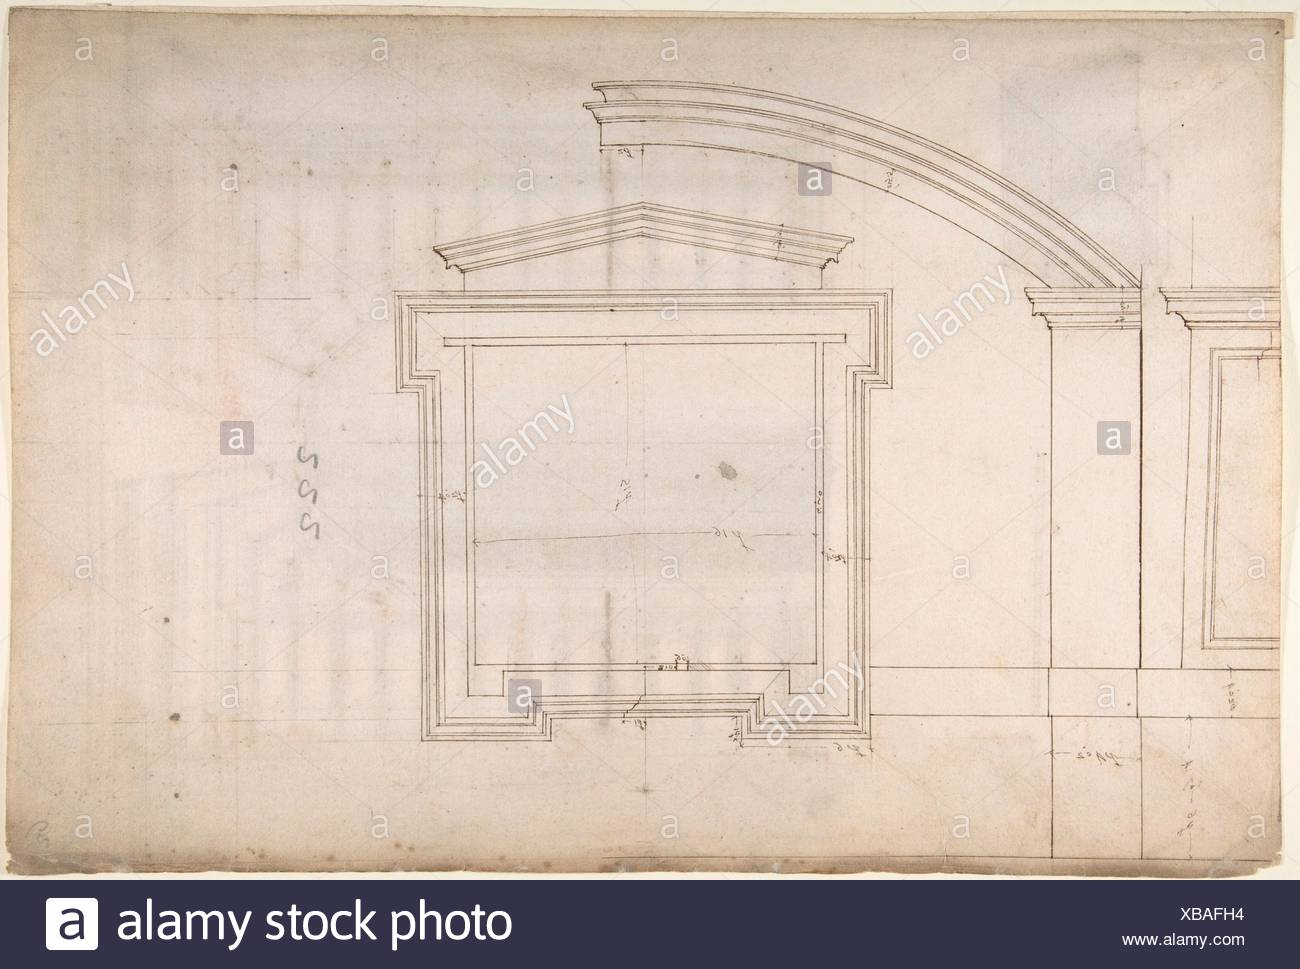 St. Peter´s, apse, window, elevation (recto) Unidentified, portal, elevation (verso). Draftsman: Drawn by Anonymous, French, 16th century; Artist: Stock Photo